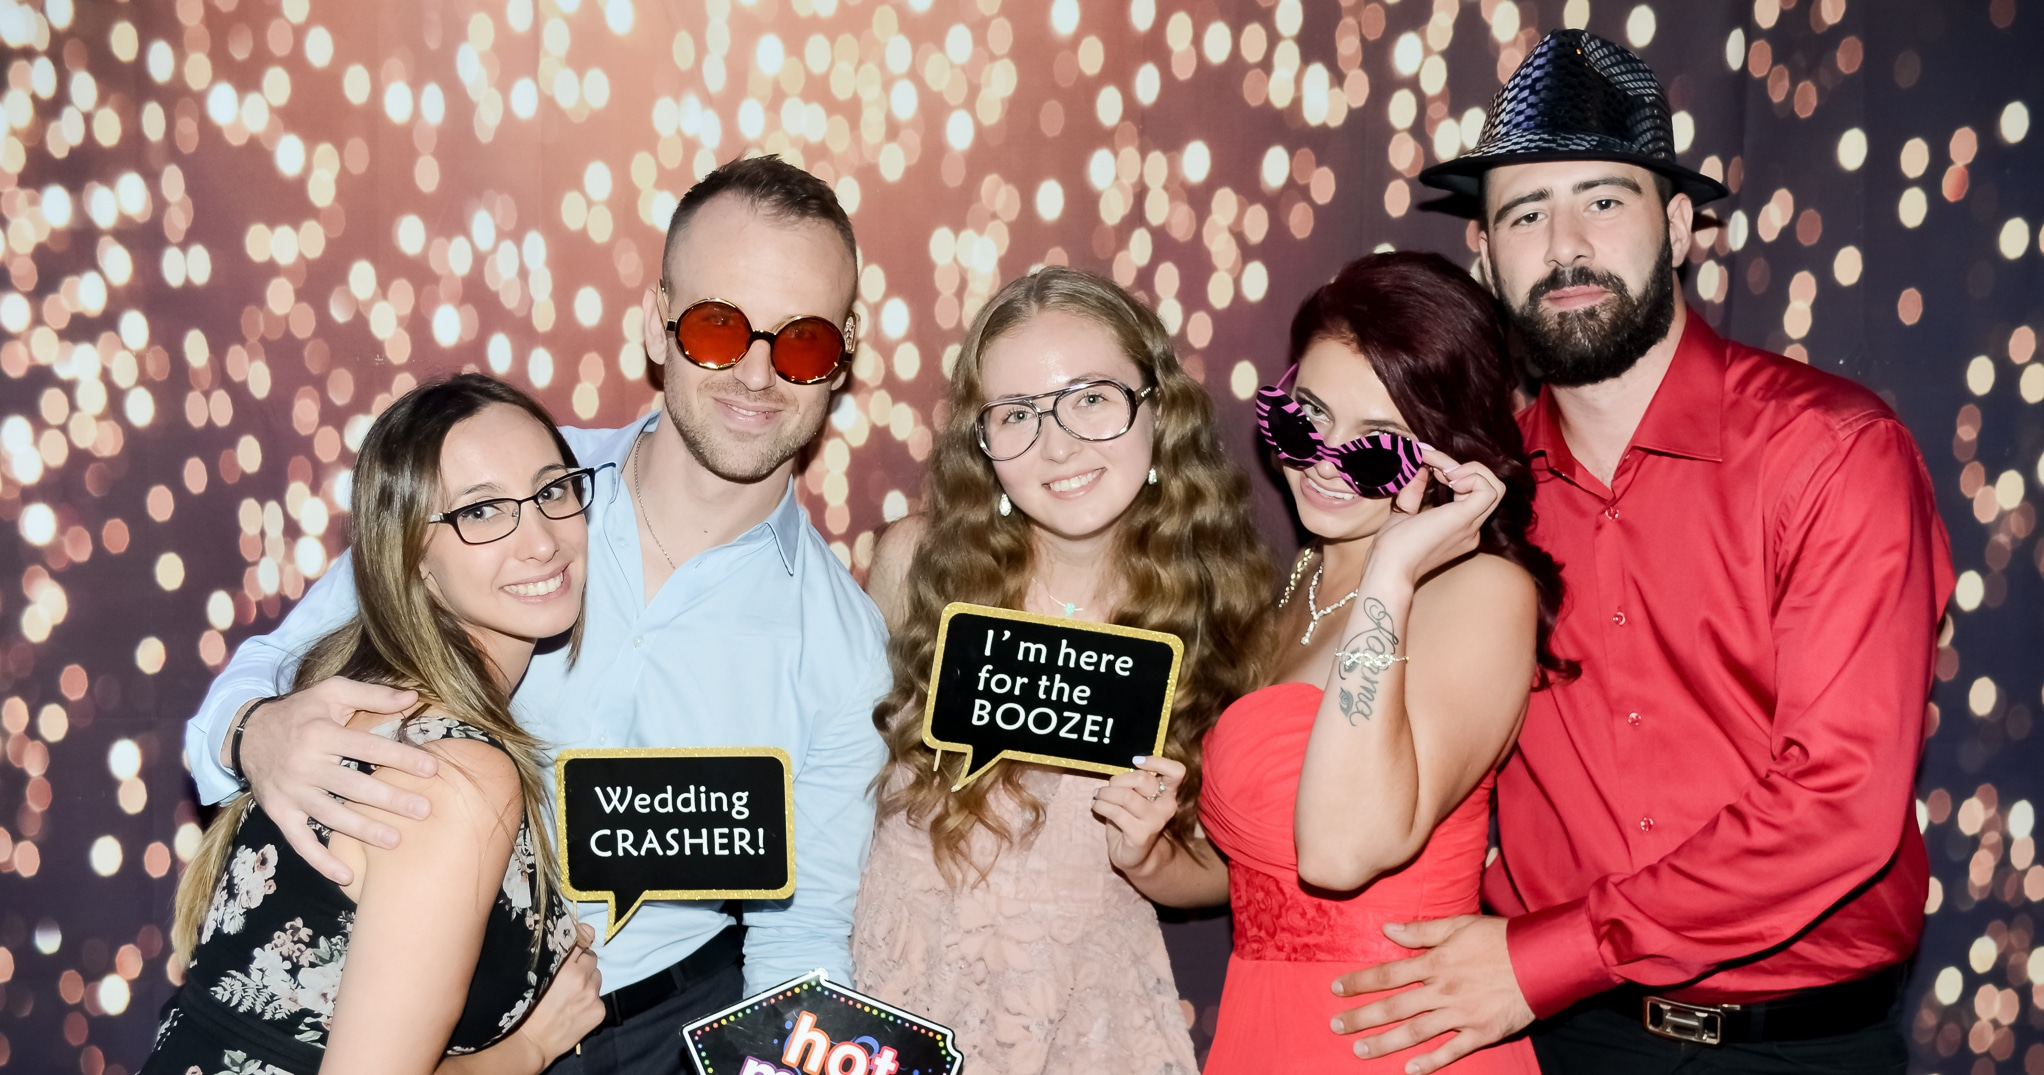 Best Place to Rent Your Photo Booth!